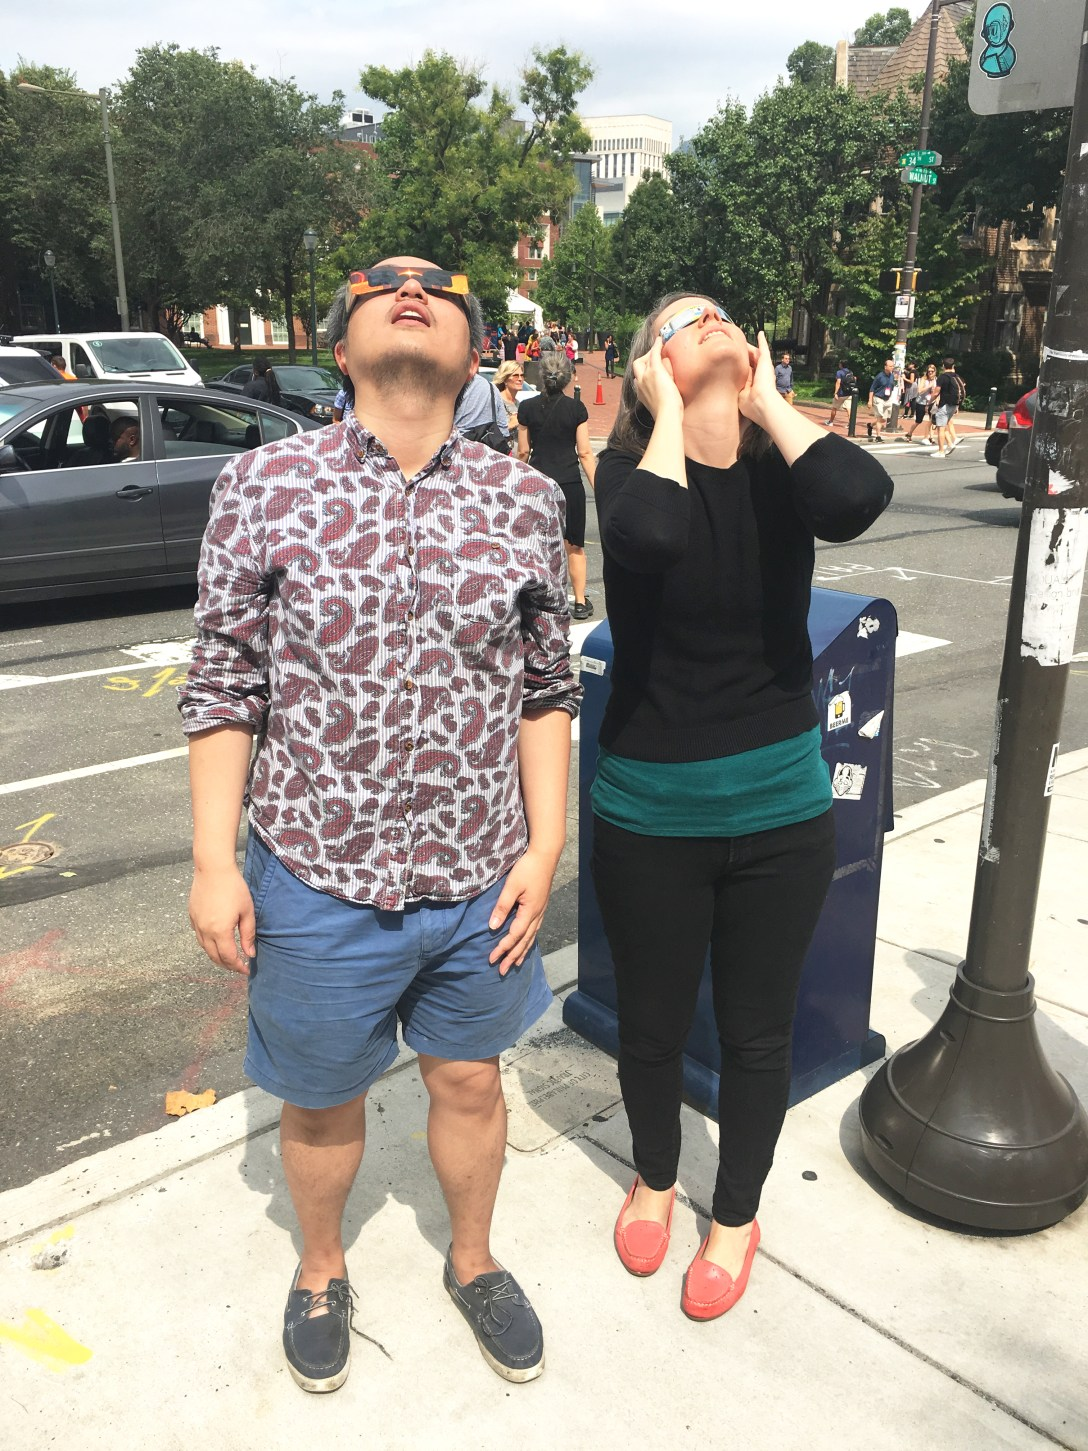 Iggy and The Goddess Attainable viewing the solar eclipse on August 21, 2017